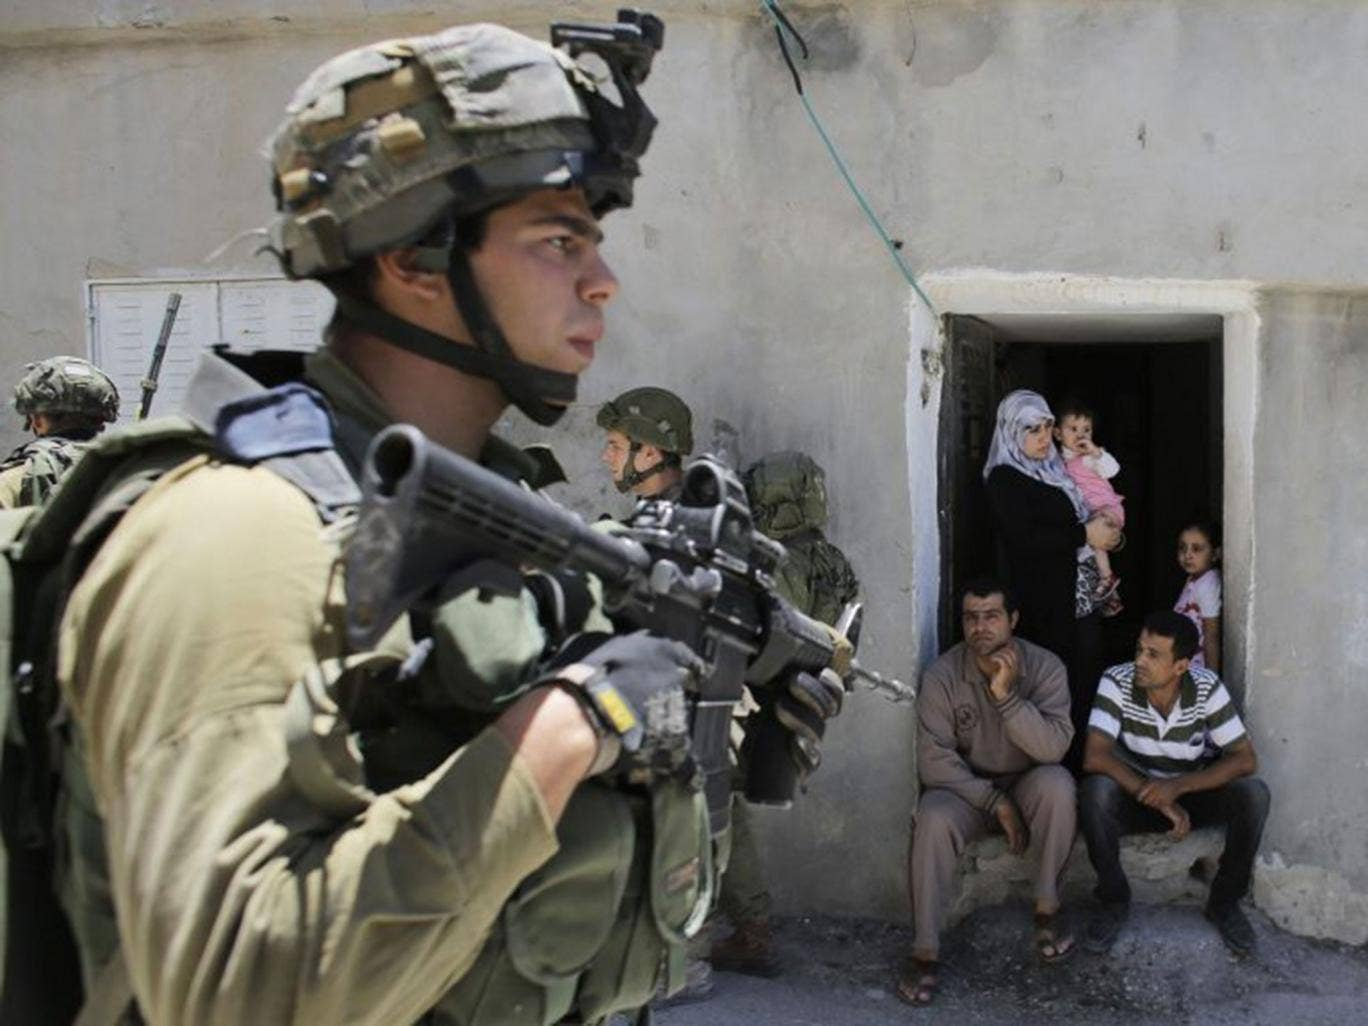 Palestinians watch Israeli soldiers patrol near the West Bank City of Hebron yesterday, close to where the teenagers were last seen